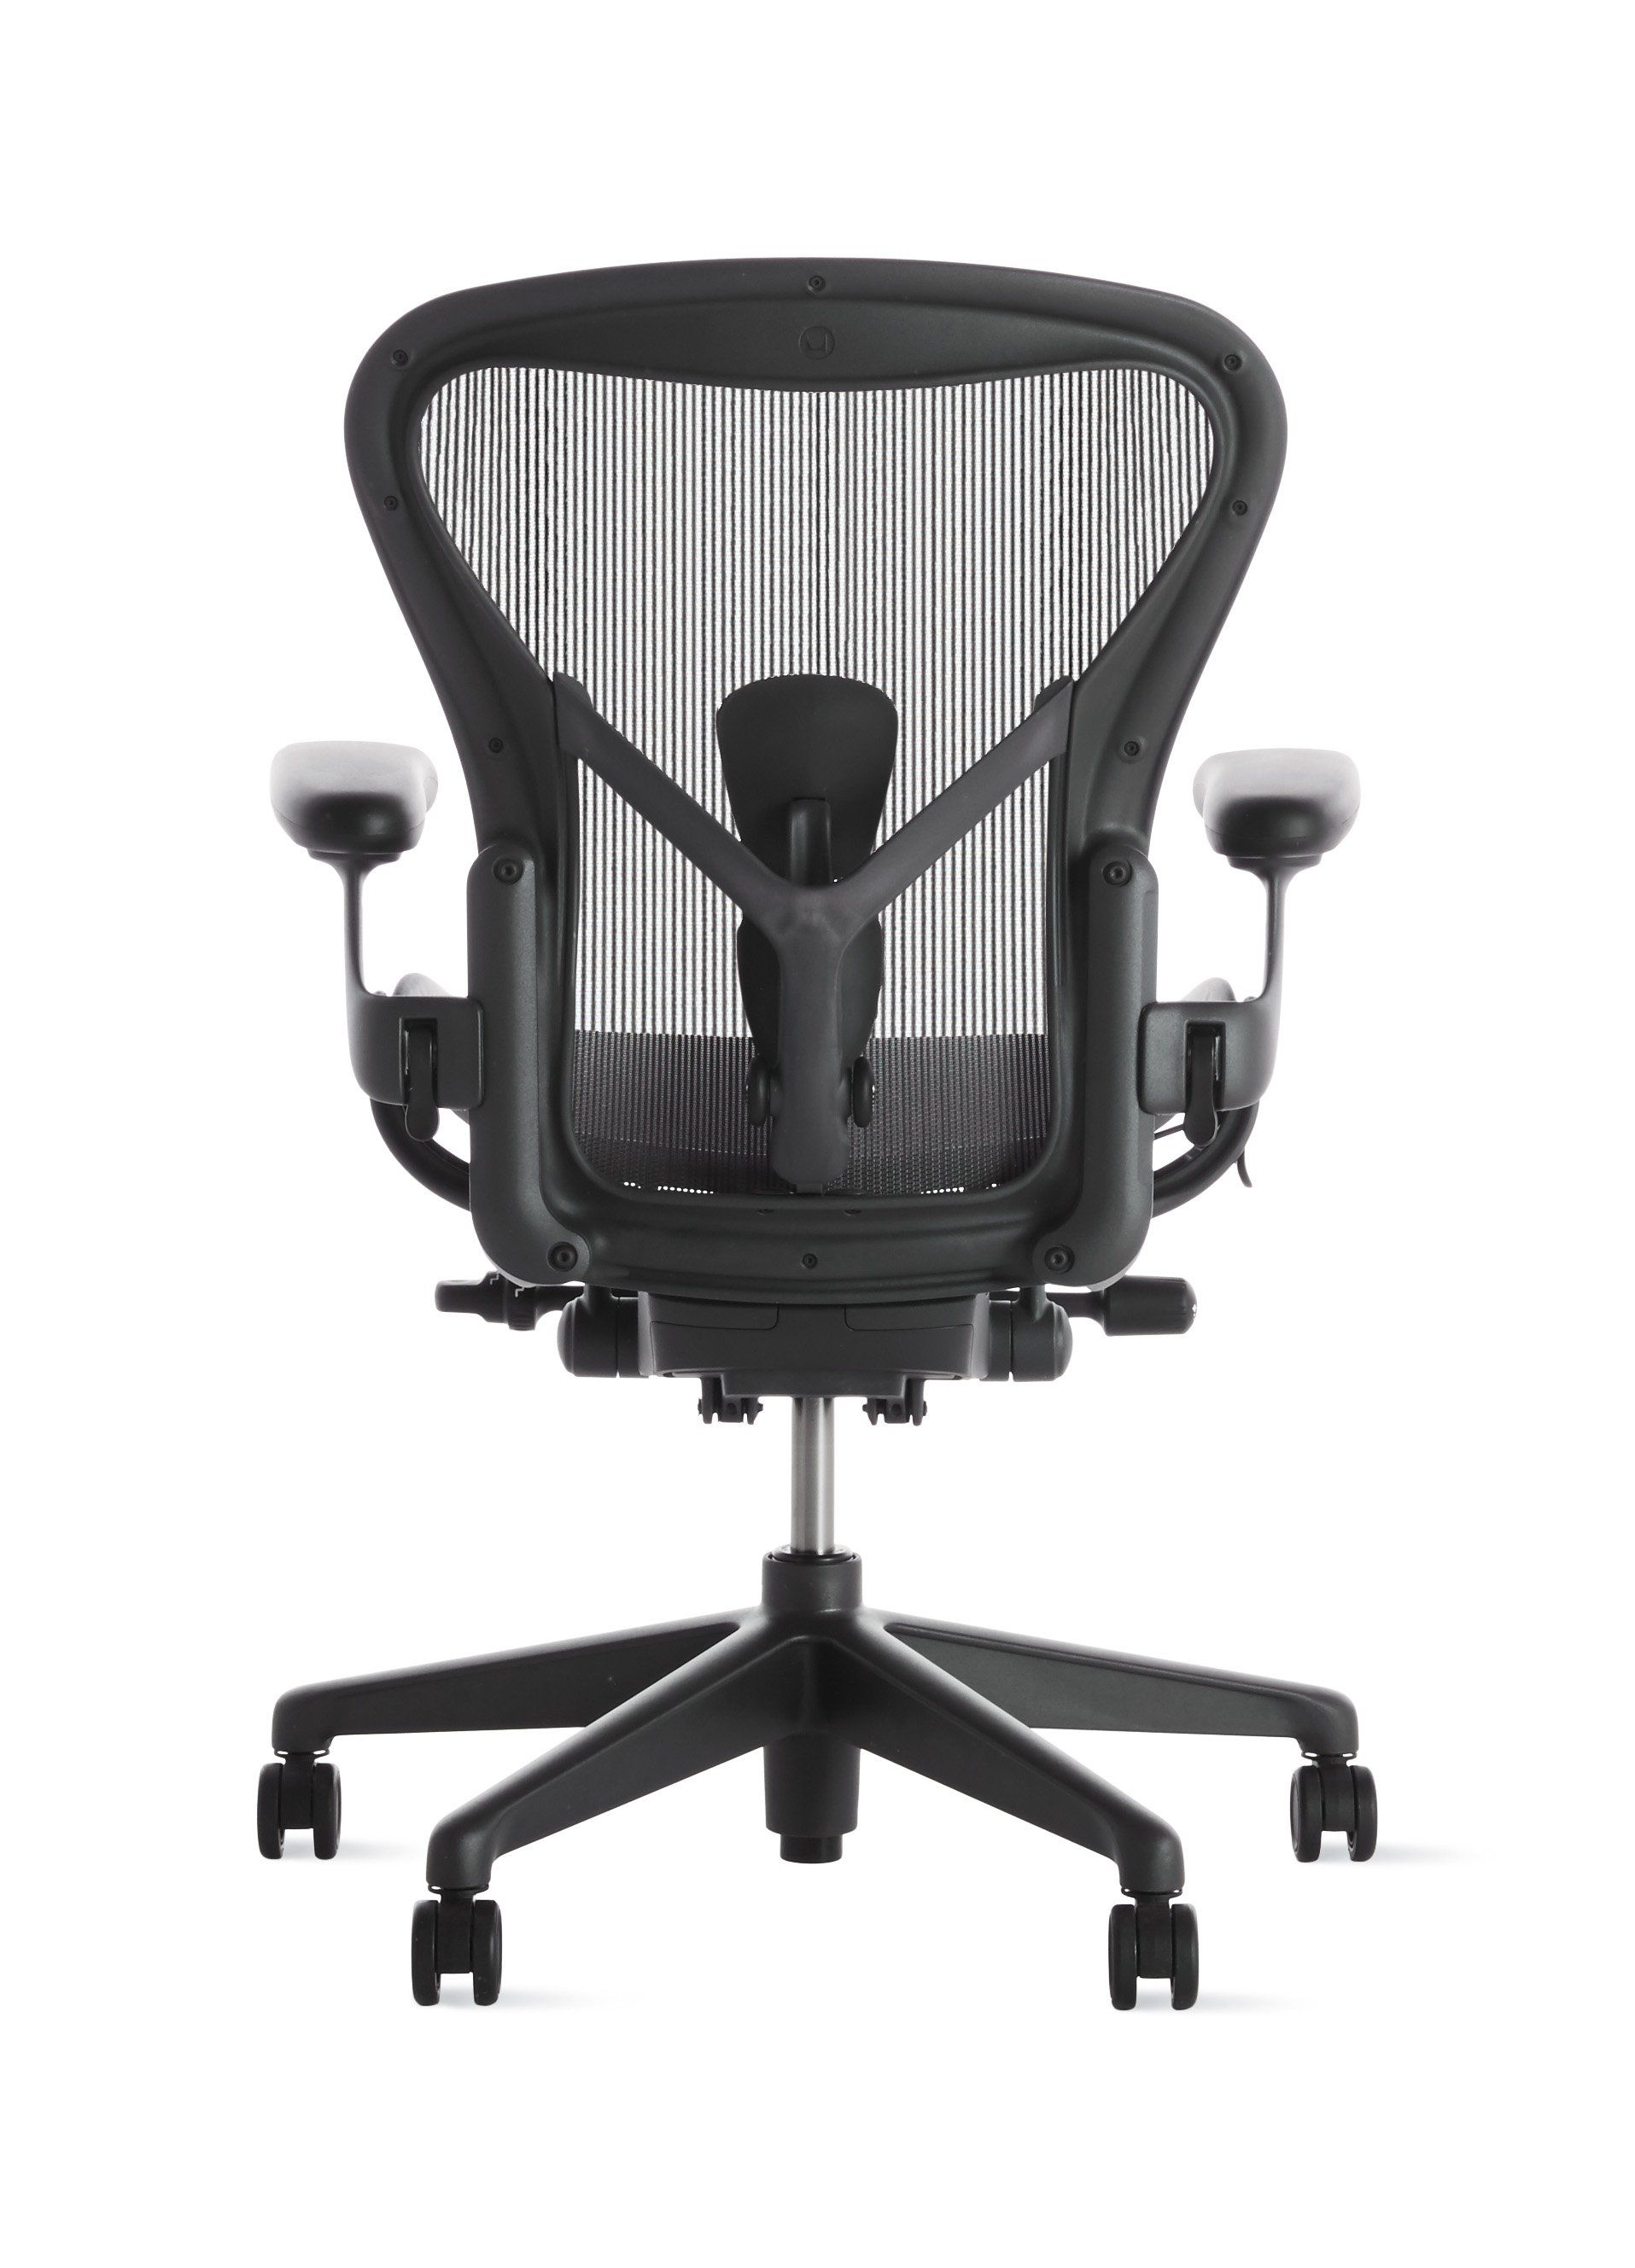 Aeron Chair in 2020 Aeron chairs, Chair, Office chair design